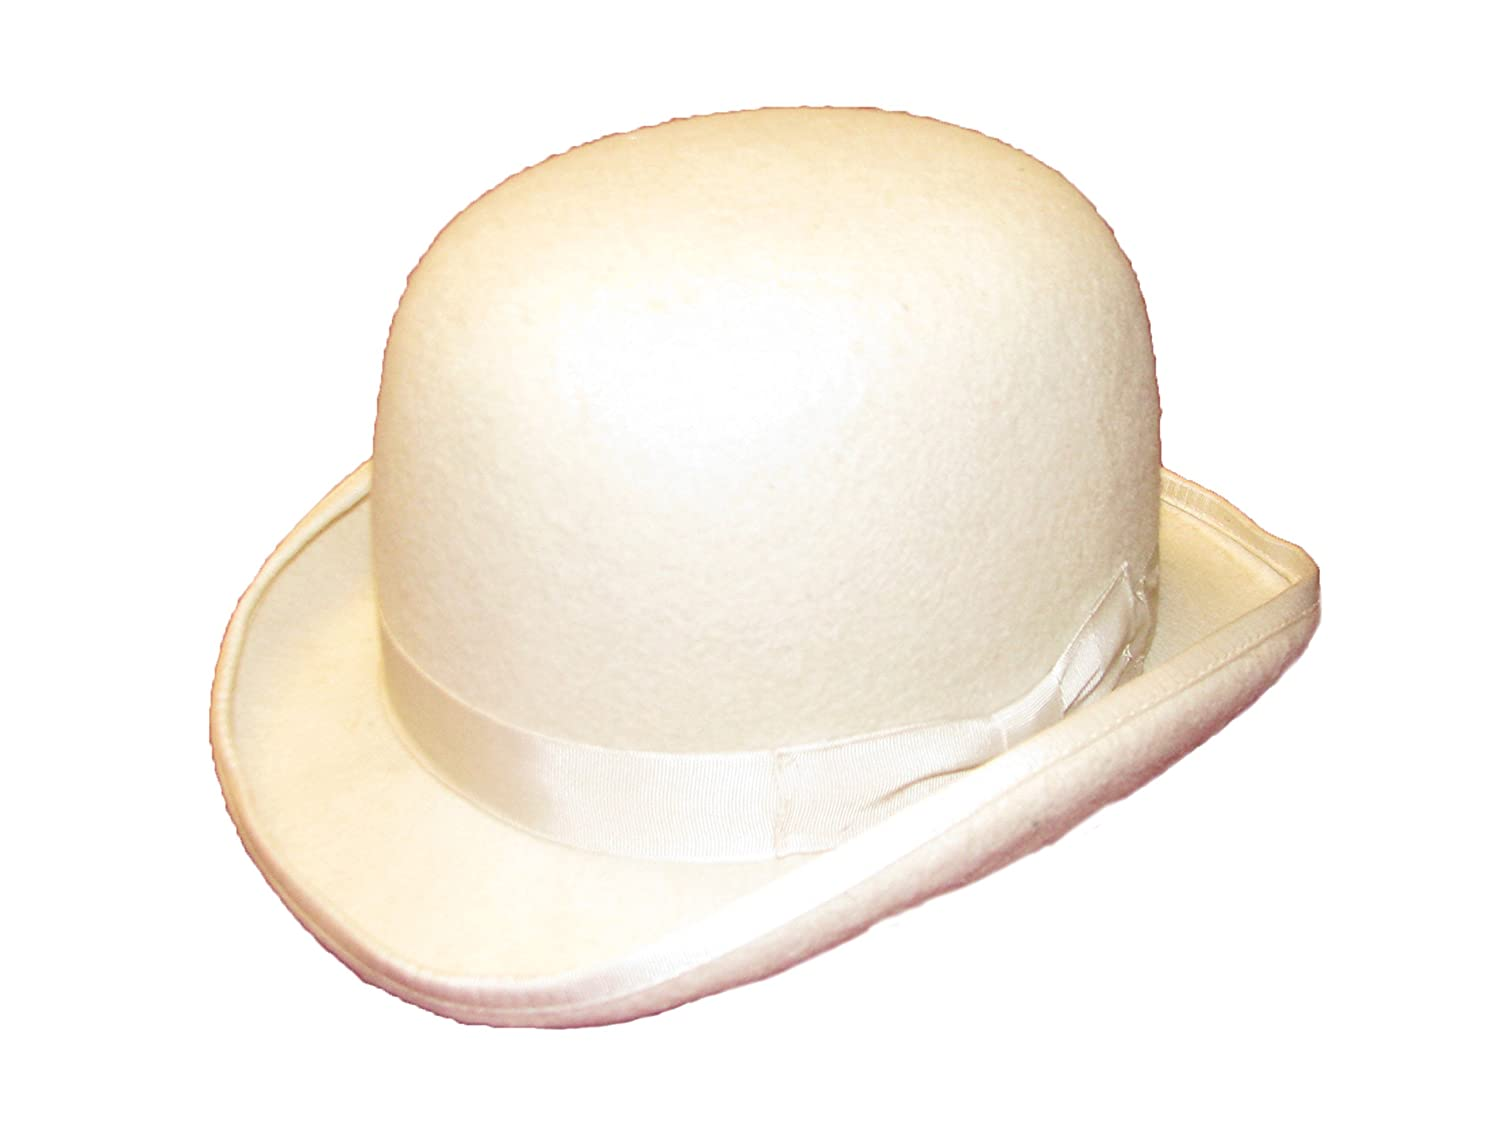 Wool Hand Made Quality Round Top Hard Bowler Hat in Off White with Satin Lining